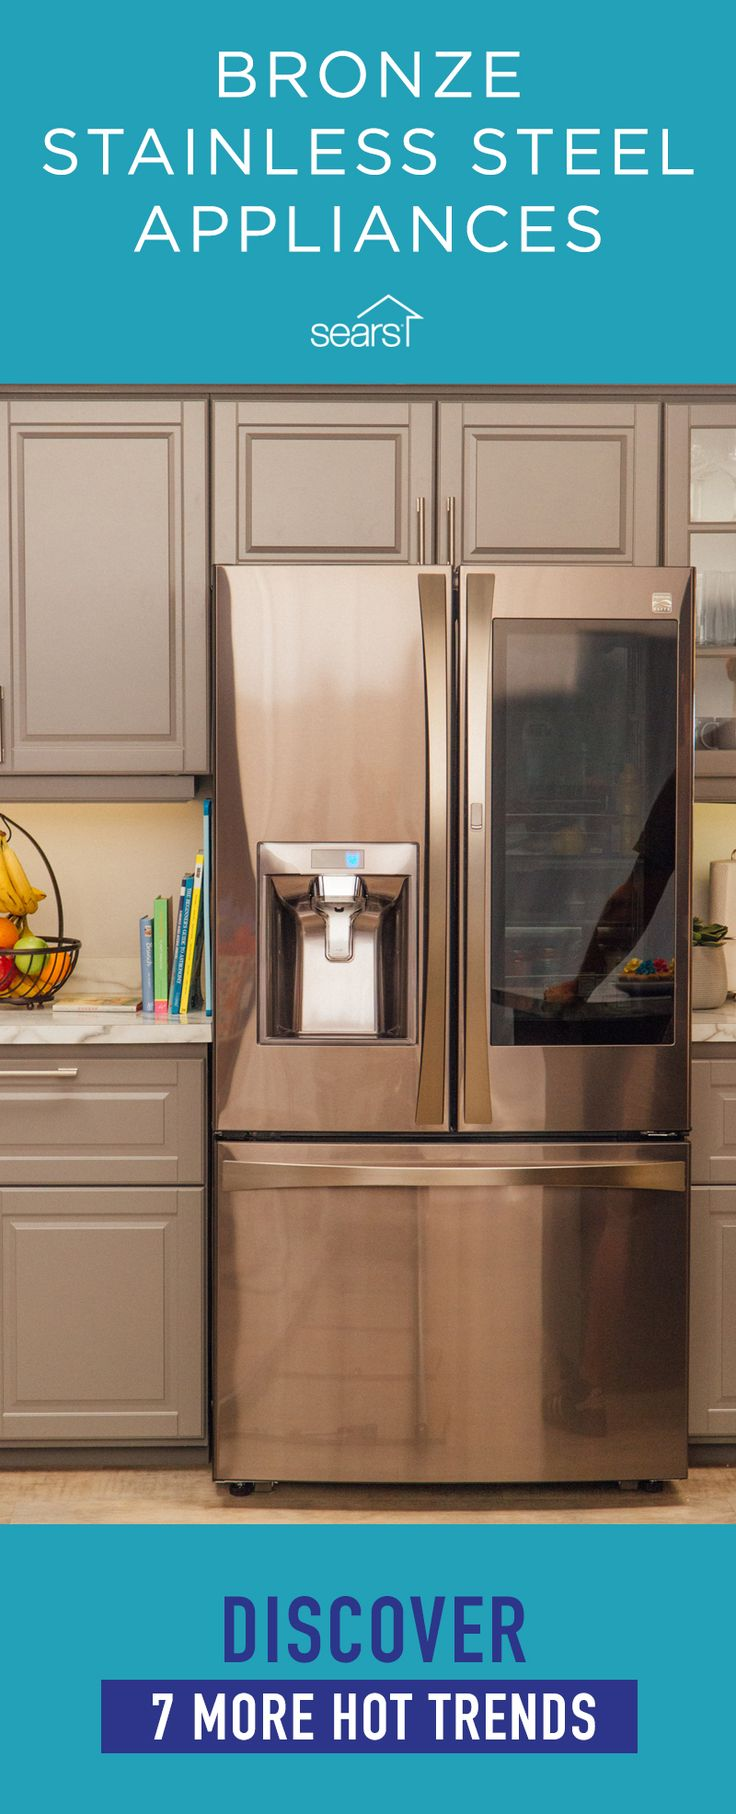 Bronze stainless steel appliances are just one of this year's hot appliance trends. Appliances are smarter and sleeker than ever before and we've got the scoop on the latest design trends. From ovens with french doors to smart laundry that you can control from an app on your smartphone, this year's appliance trends aim to make your life easier. Visit the Sears Home Services Knowledge Center for more of this year's kitchen, laundry and bath appliance trends.